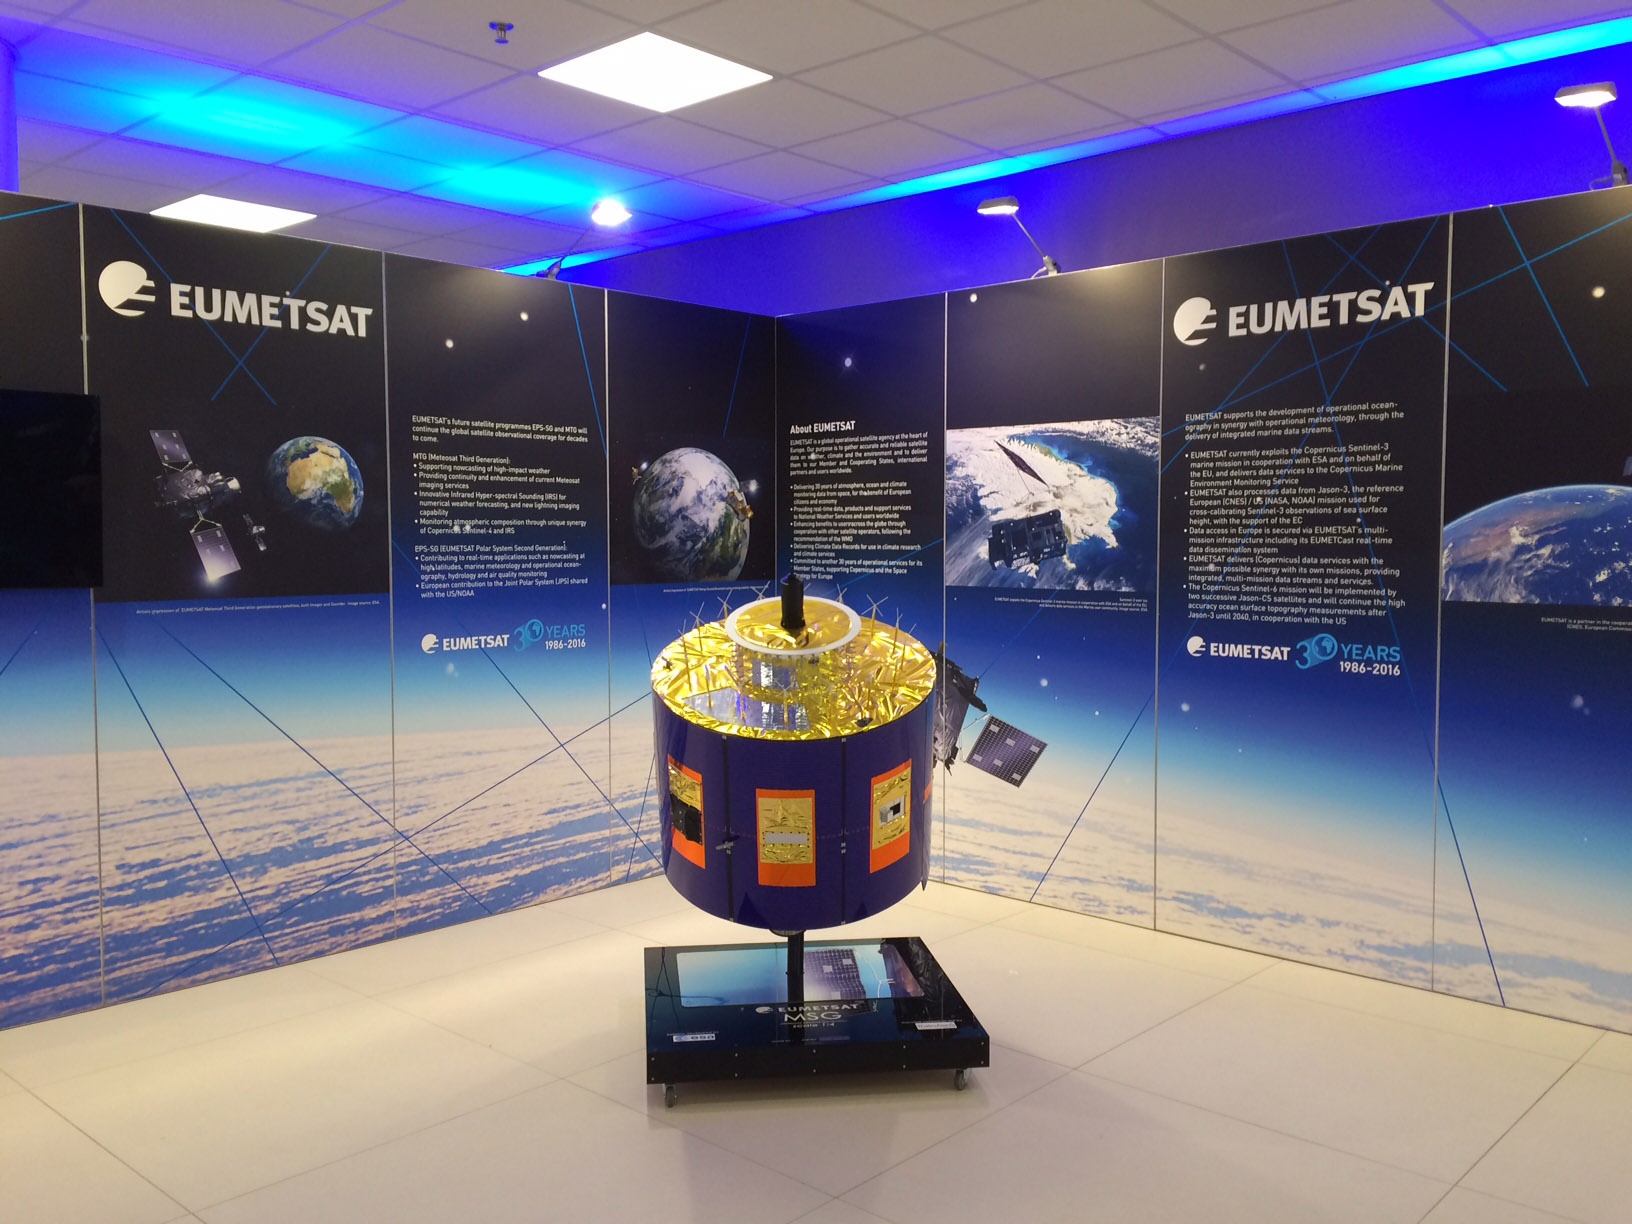 EUMETSAT's booth at European Space Solutions 2016